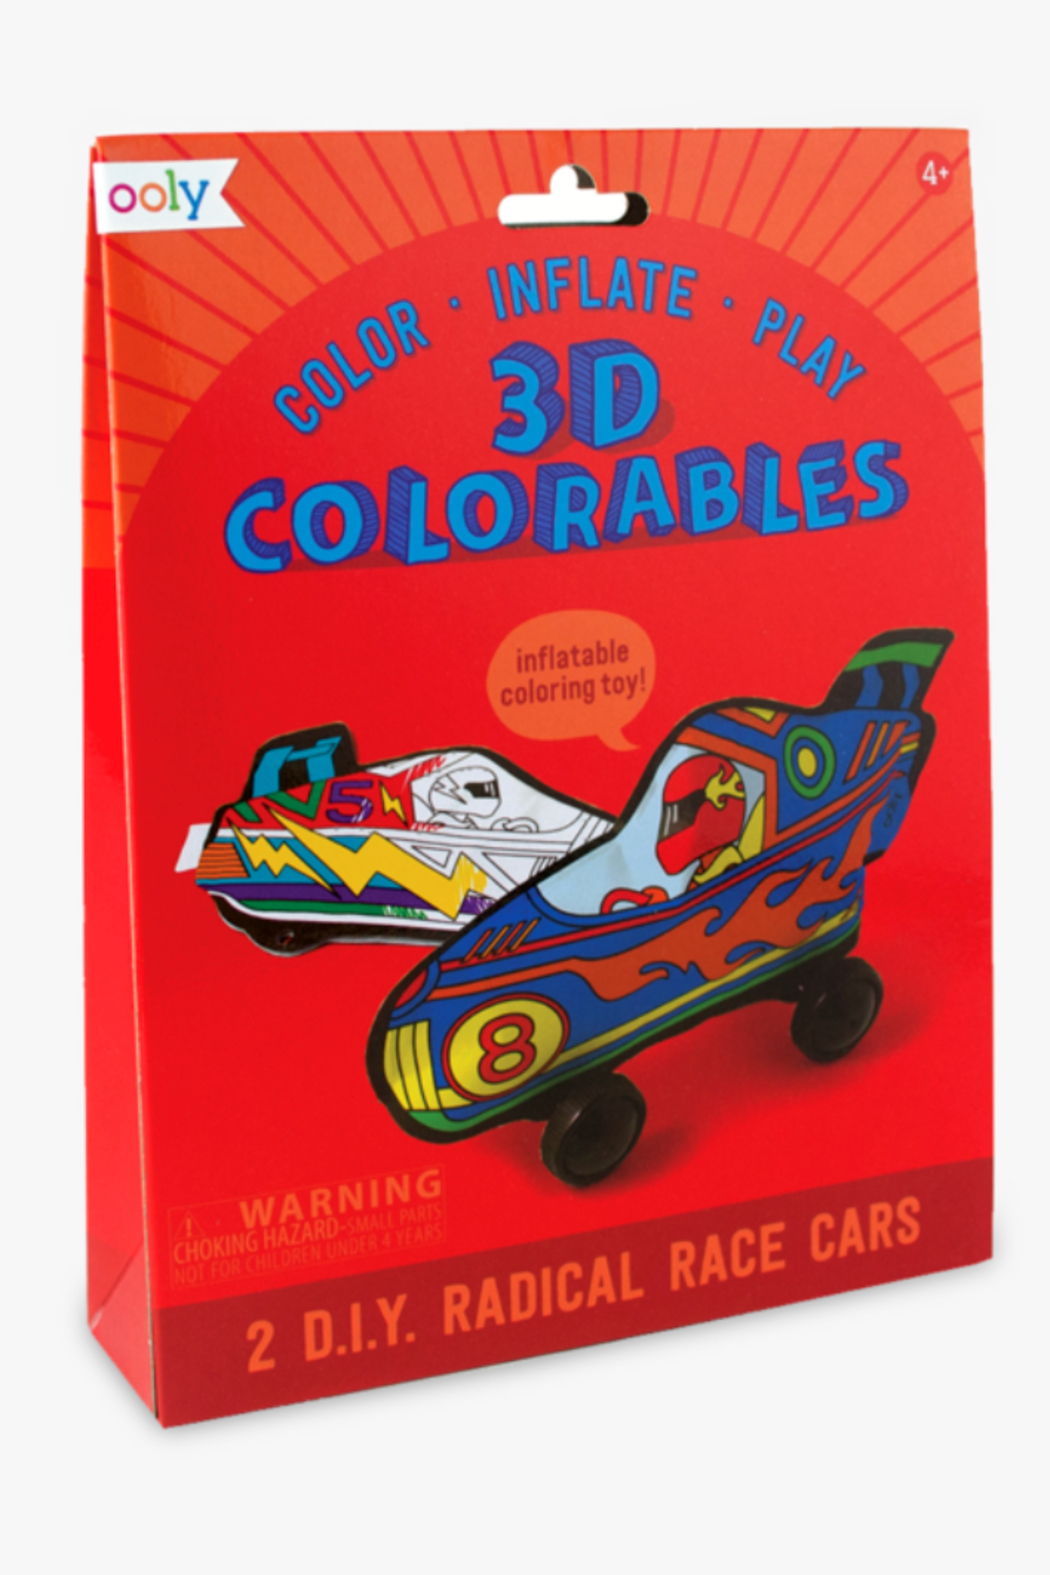 Ooly 3D Colorables Radical Race Cars - Main Image